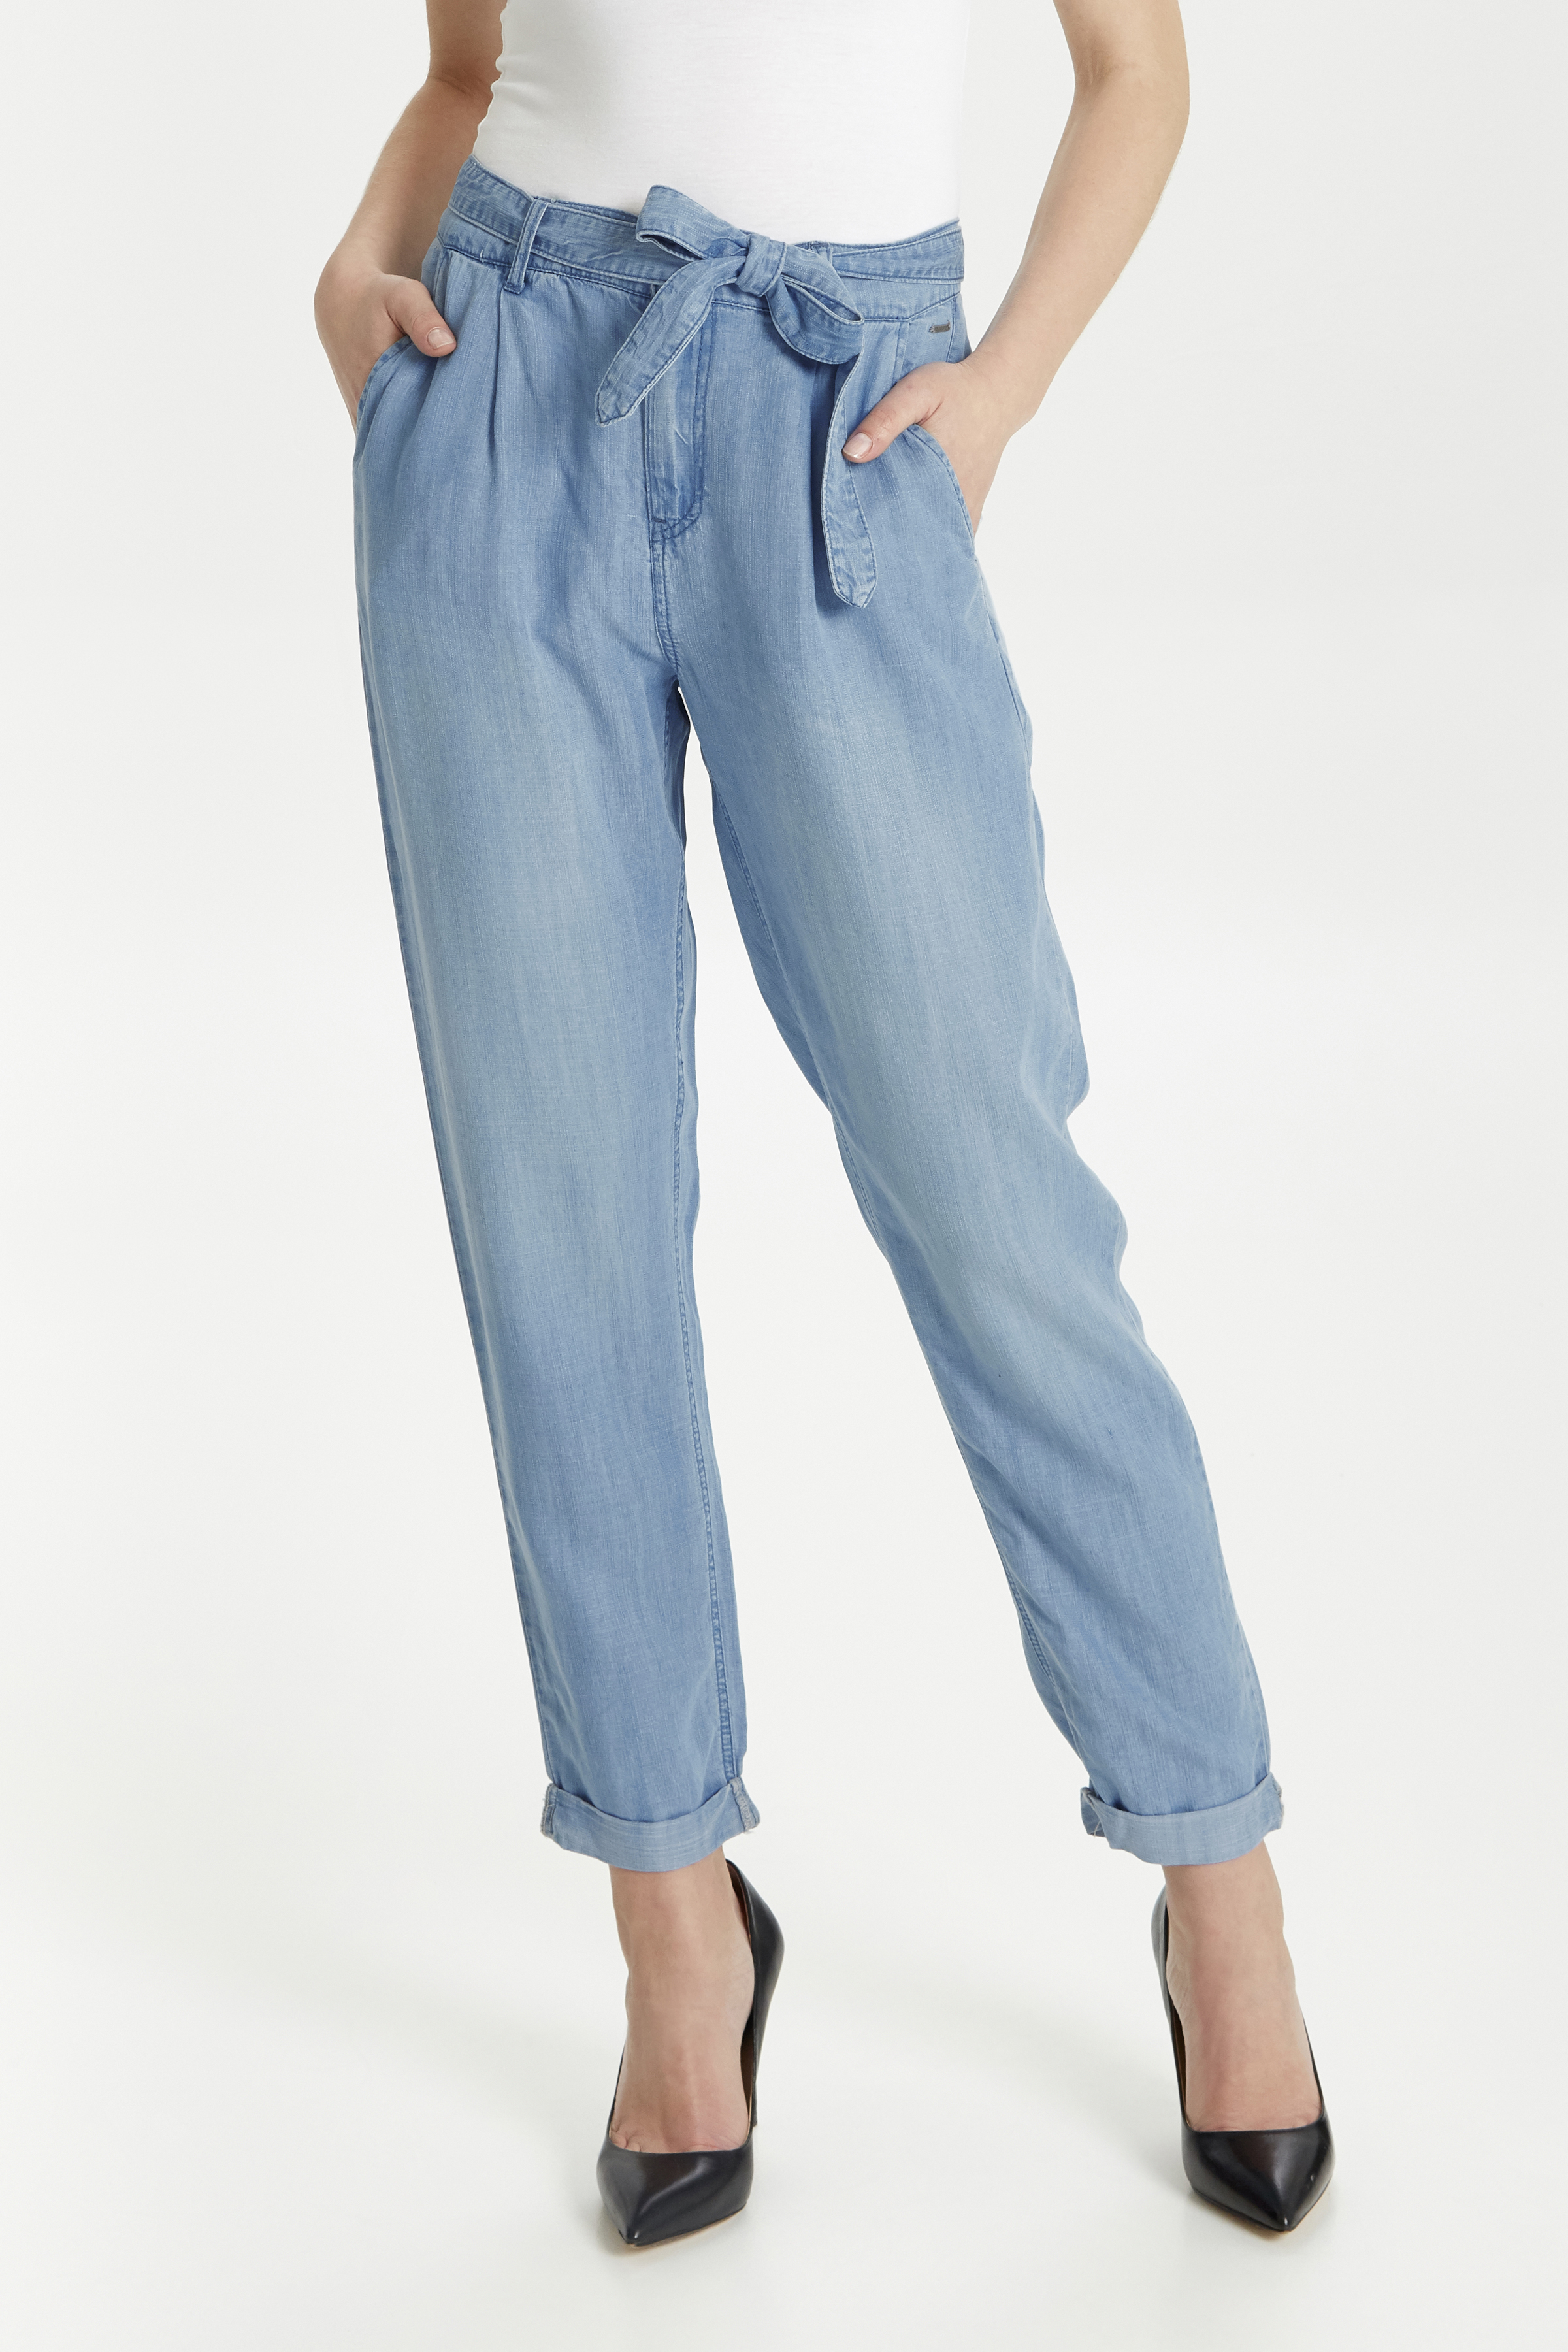 Med. blue denim